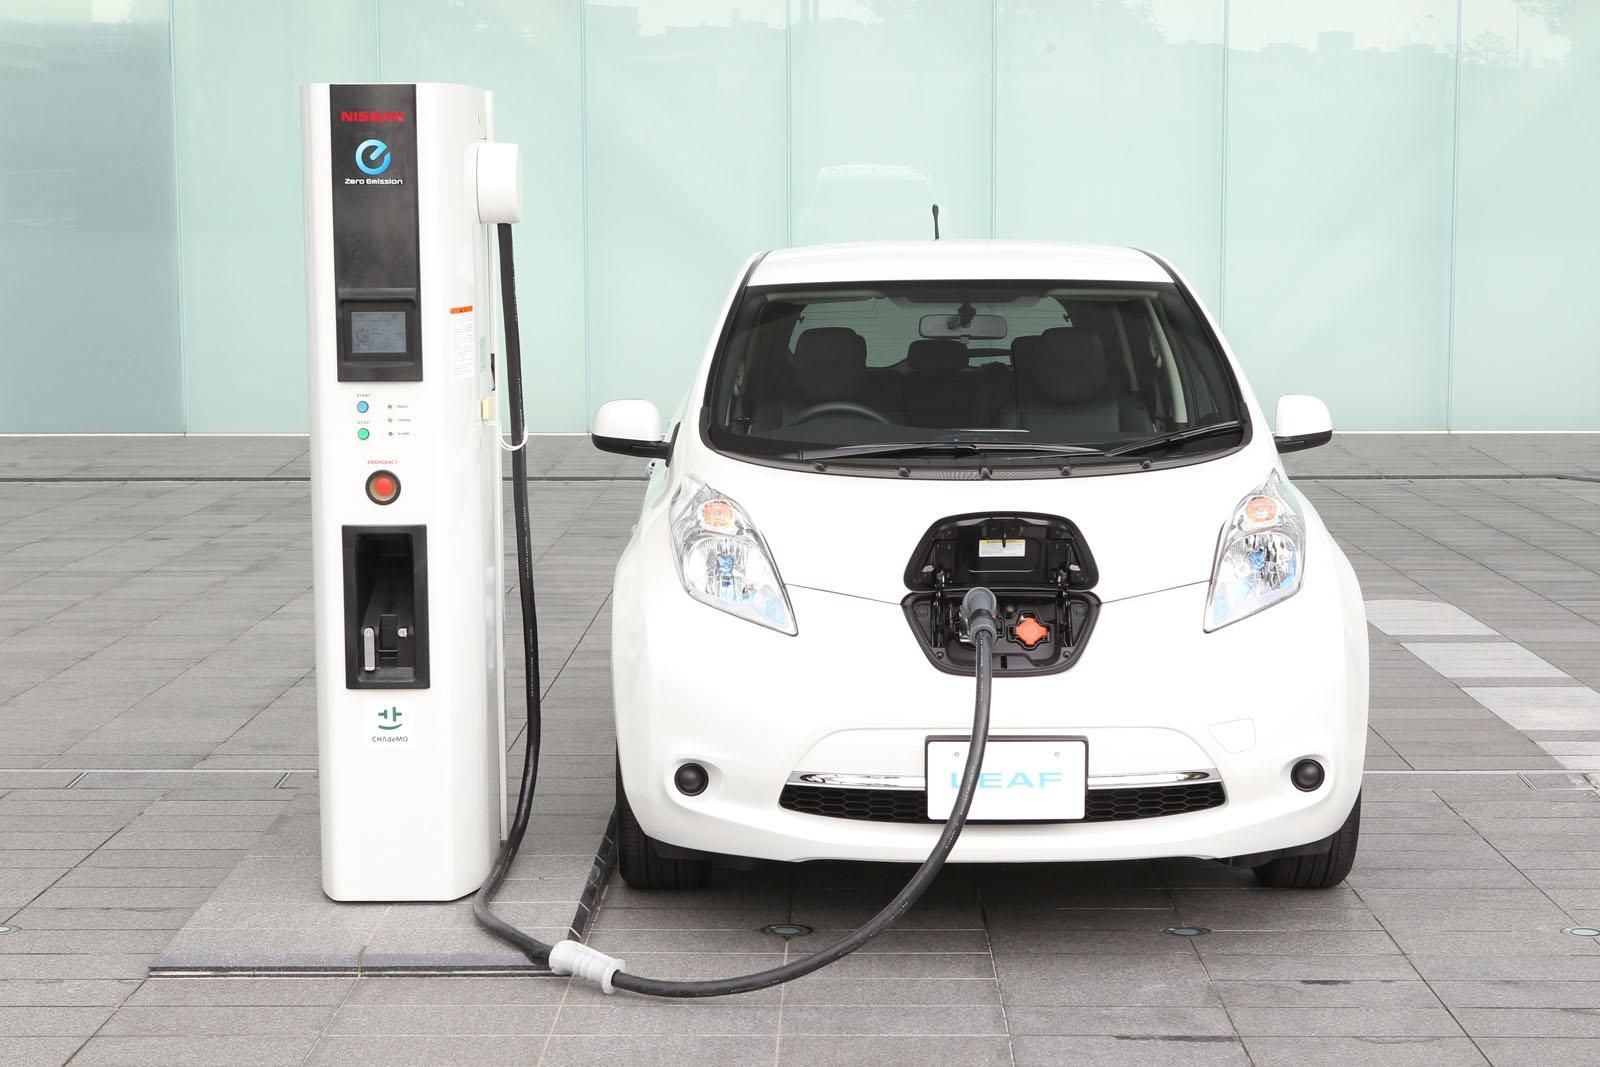 Cold Weather Reduces The Distance Electric Cars Can Travel By 57